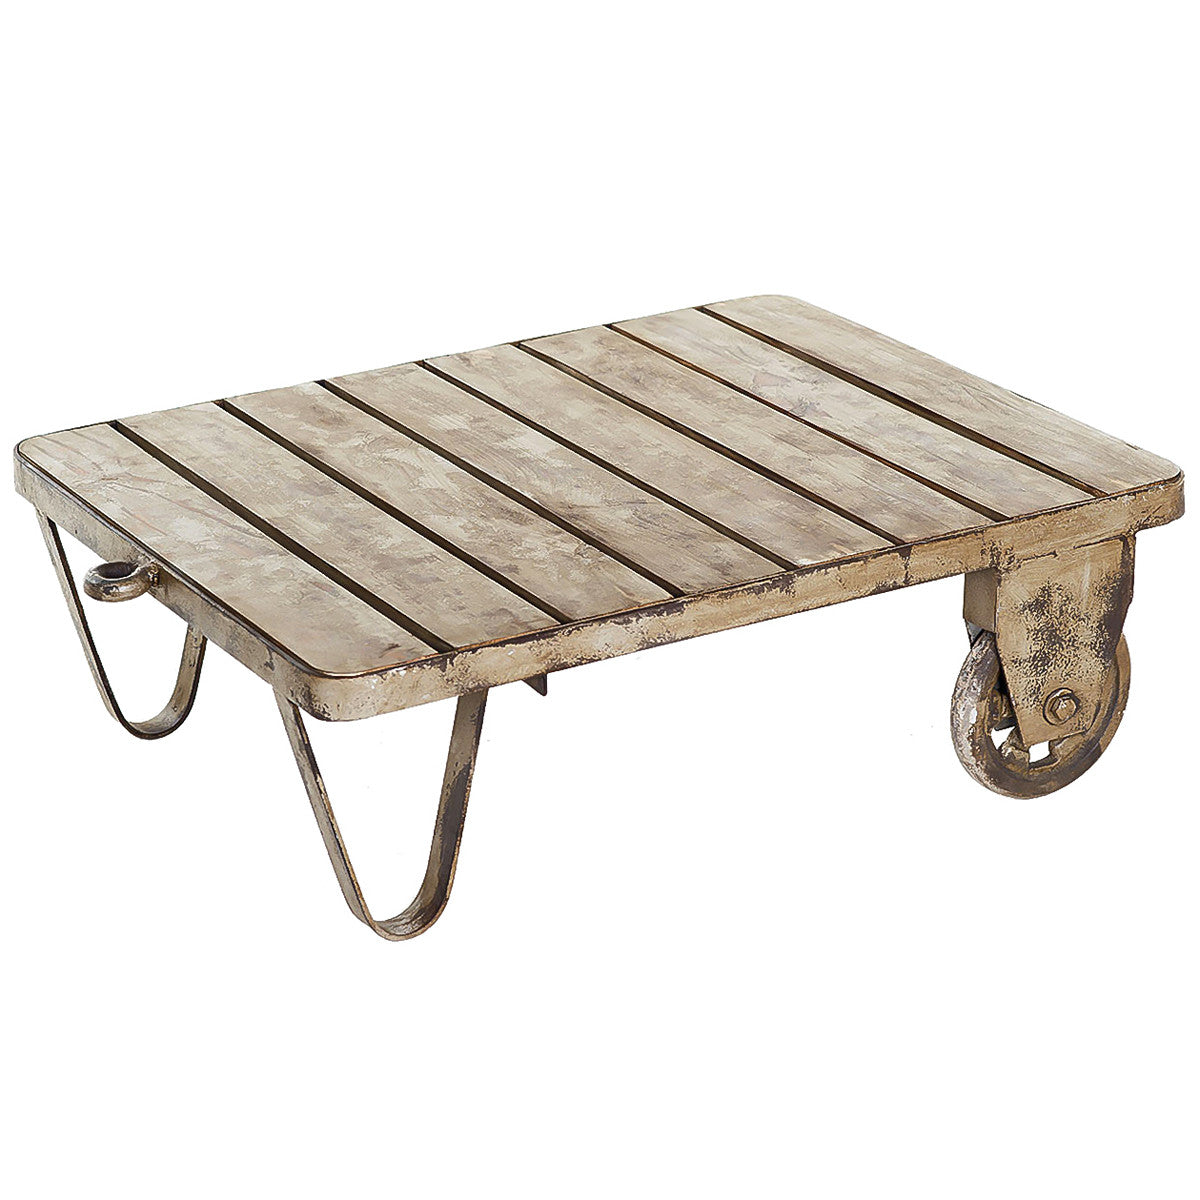 Rafina Iron U0026 Wood Cart Coffee Table, Gray Wash